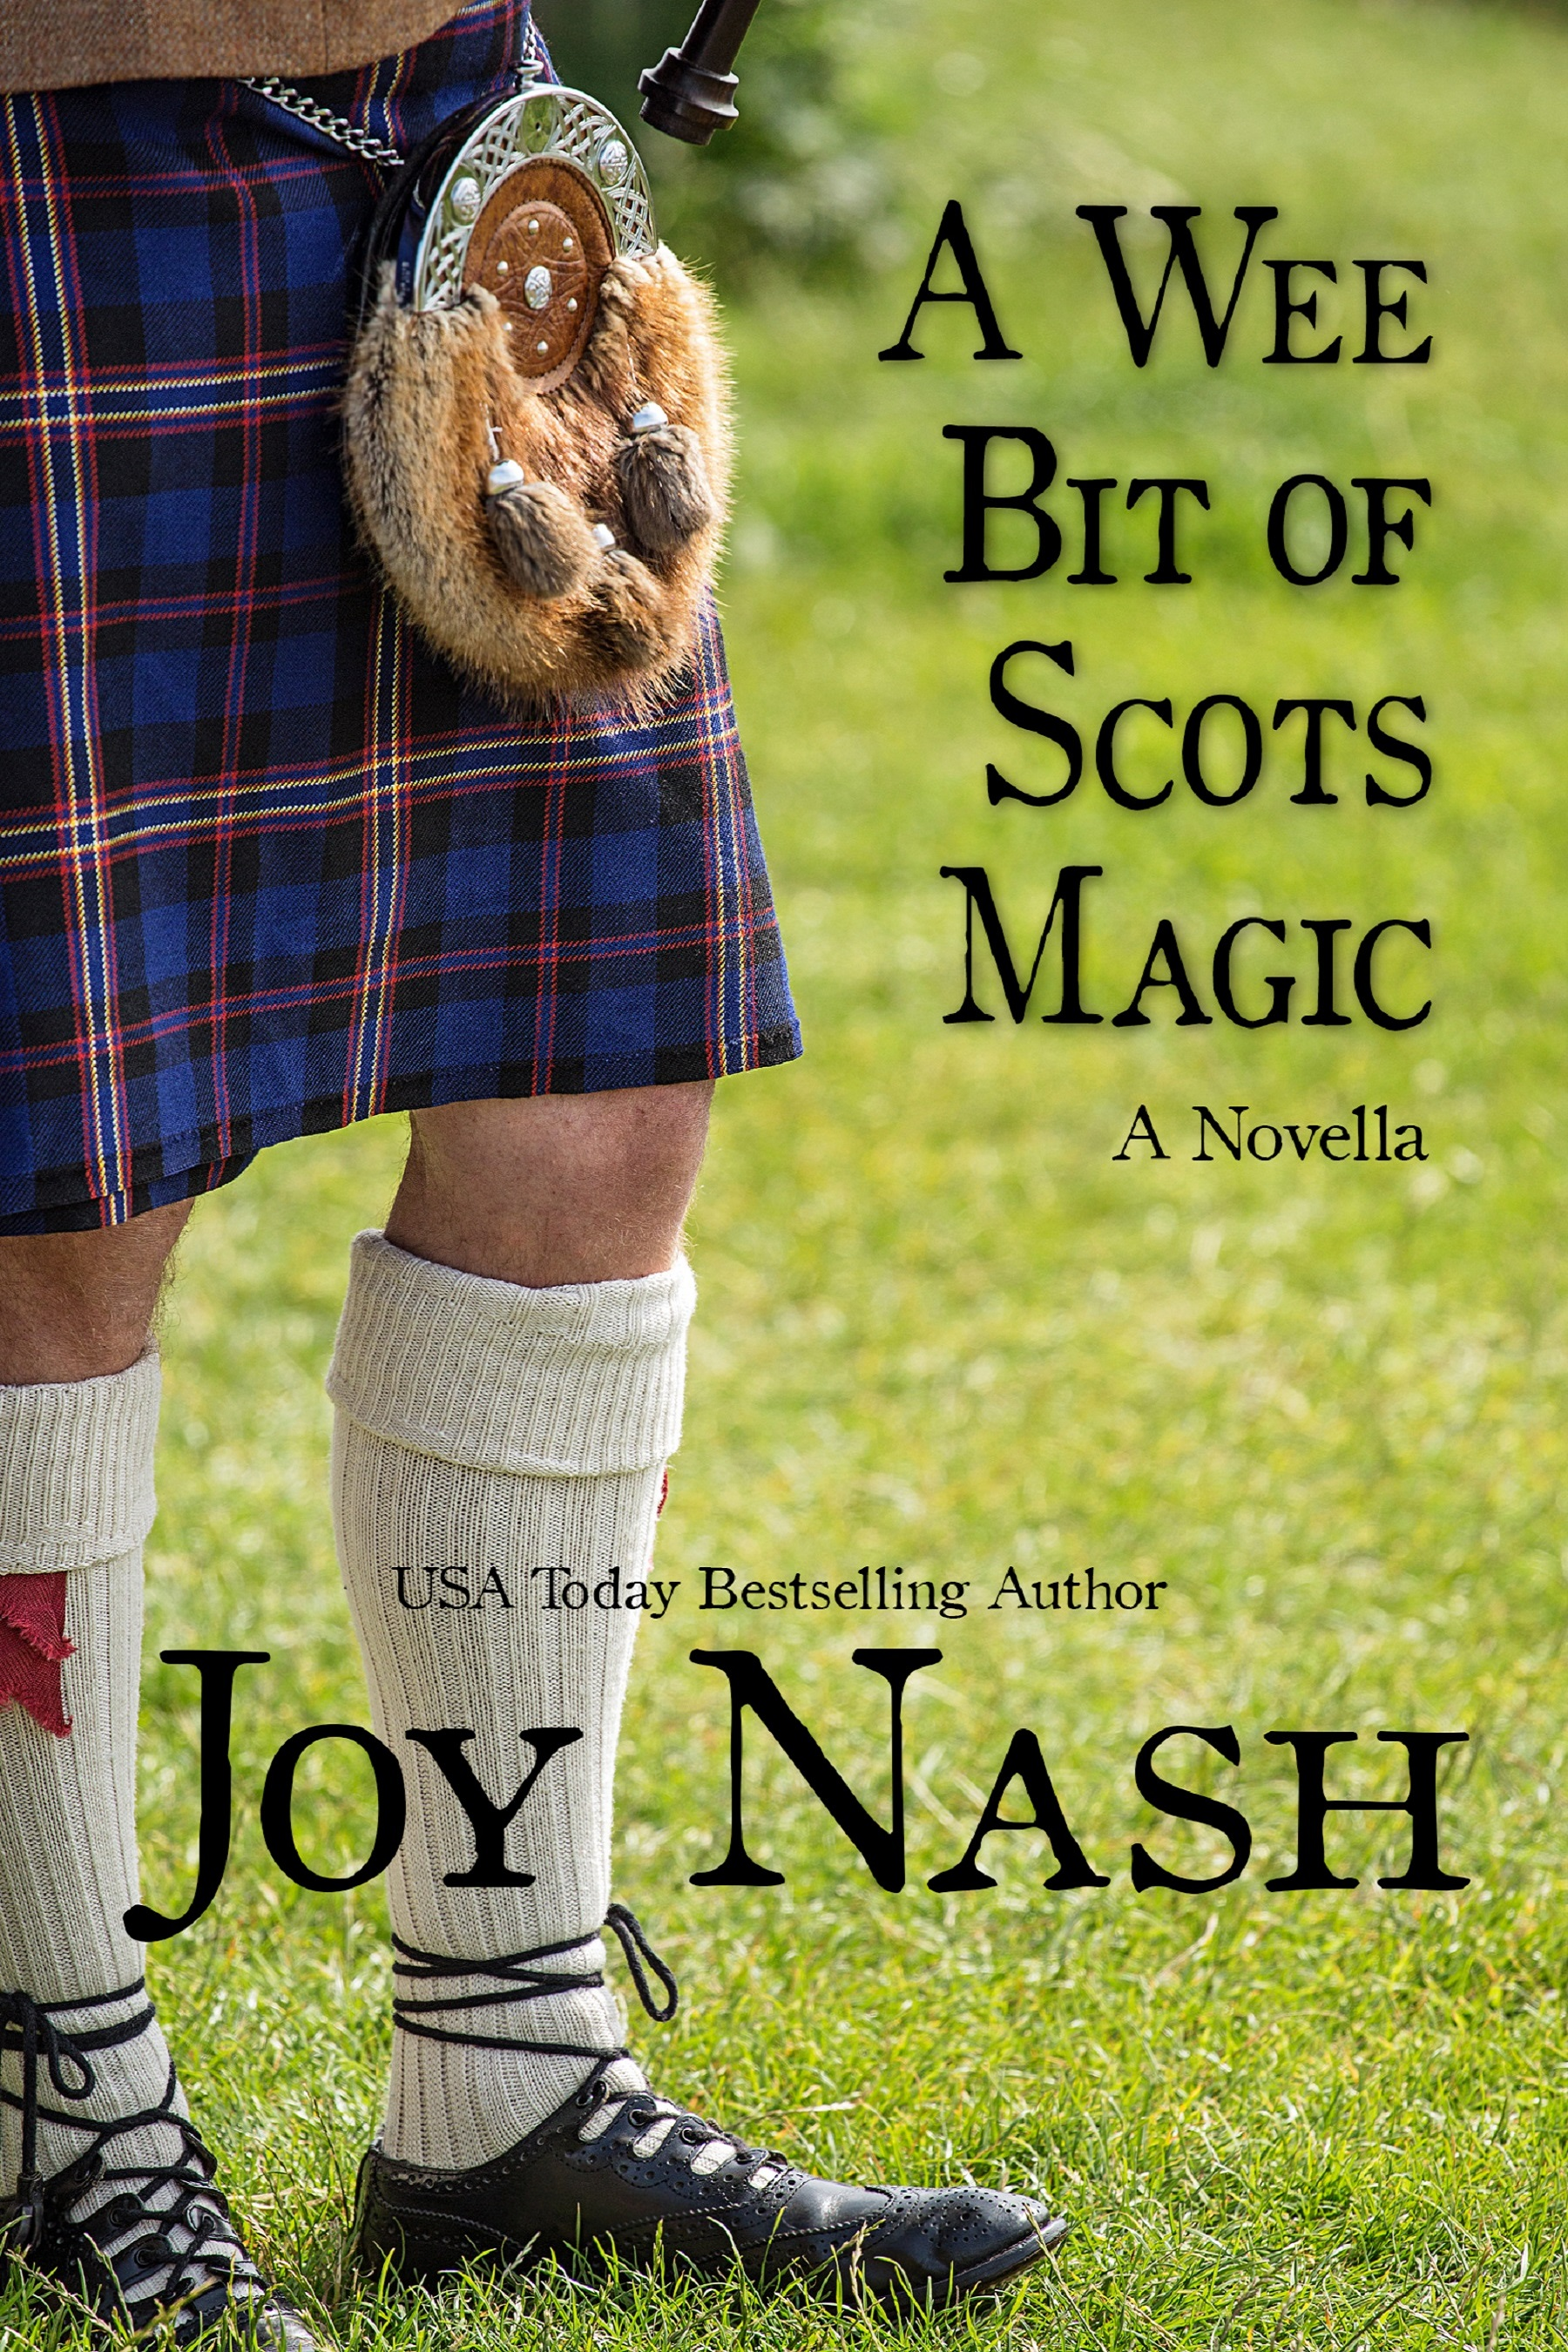 WeeBitofScotsMagic_cover_3.9MB